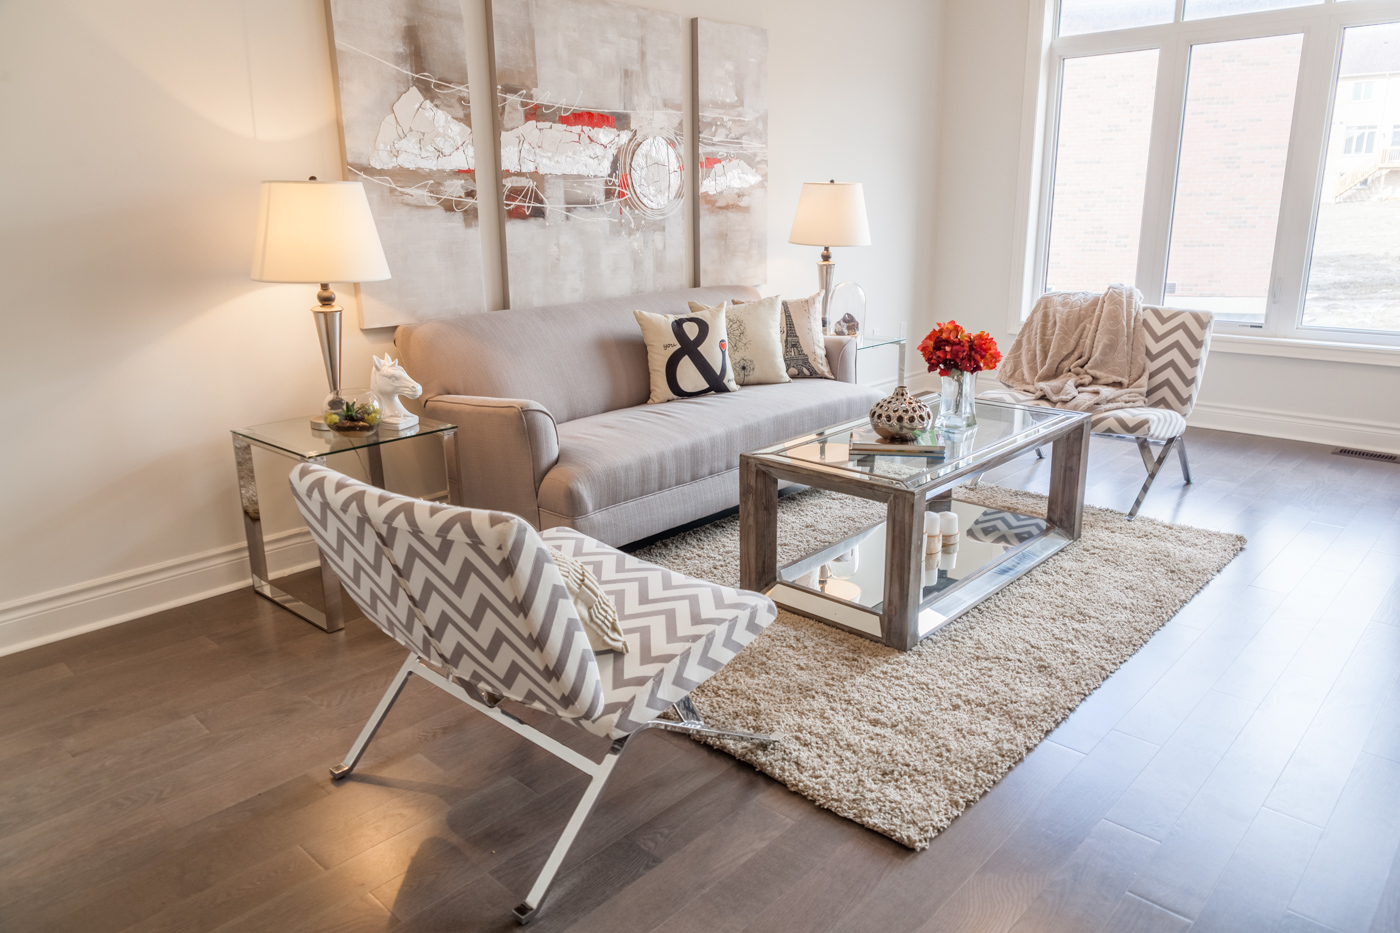 Organize and Stage Your Home with Professional Home Stager and Organizer Nina Dorian | The Home Staging Show Podcast Season 6 Episode 1 | Before & After 13.jpg